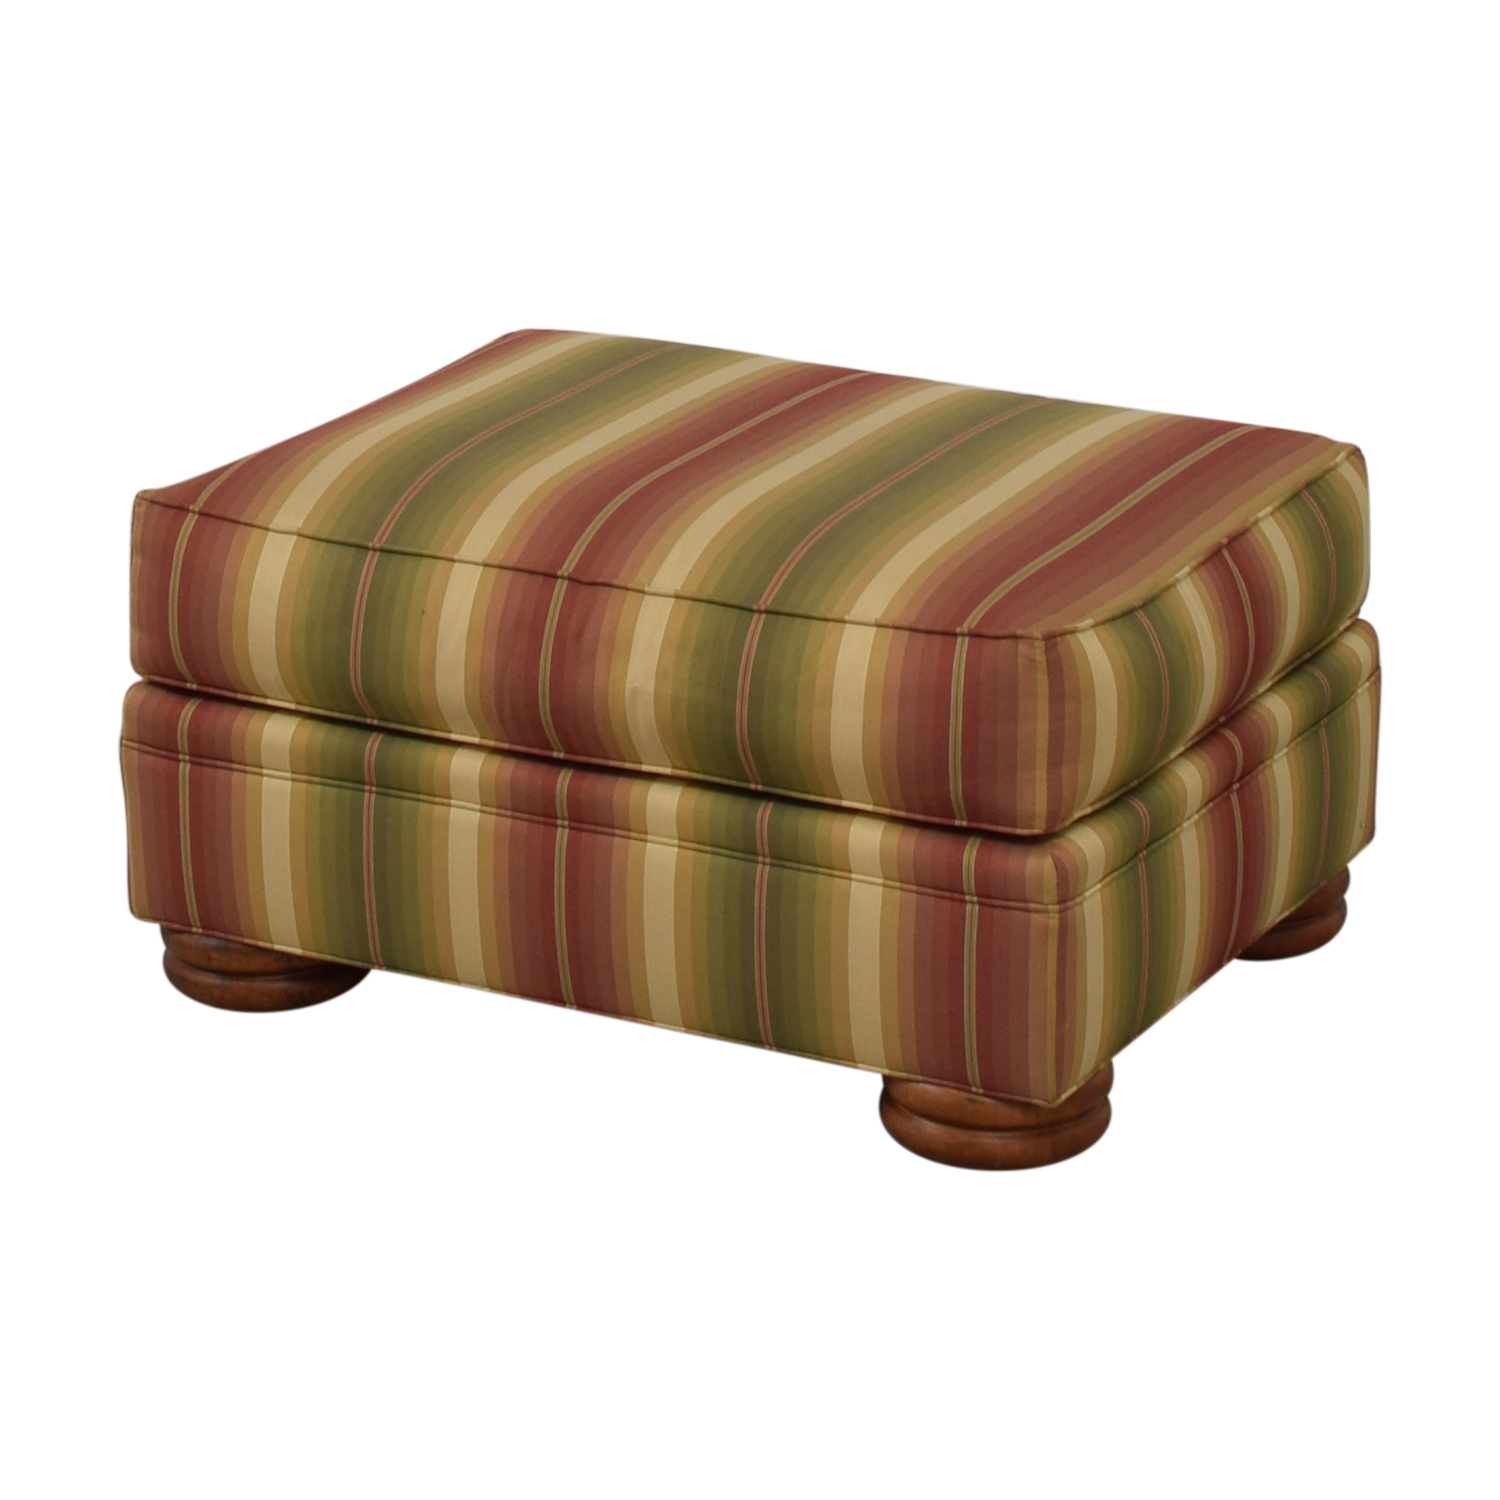 Thomasville Thomasville Striped Ottoman nj